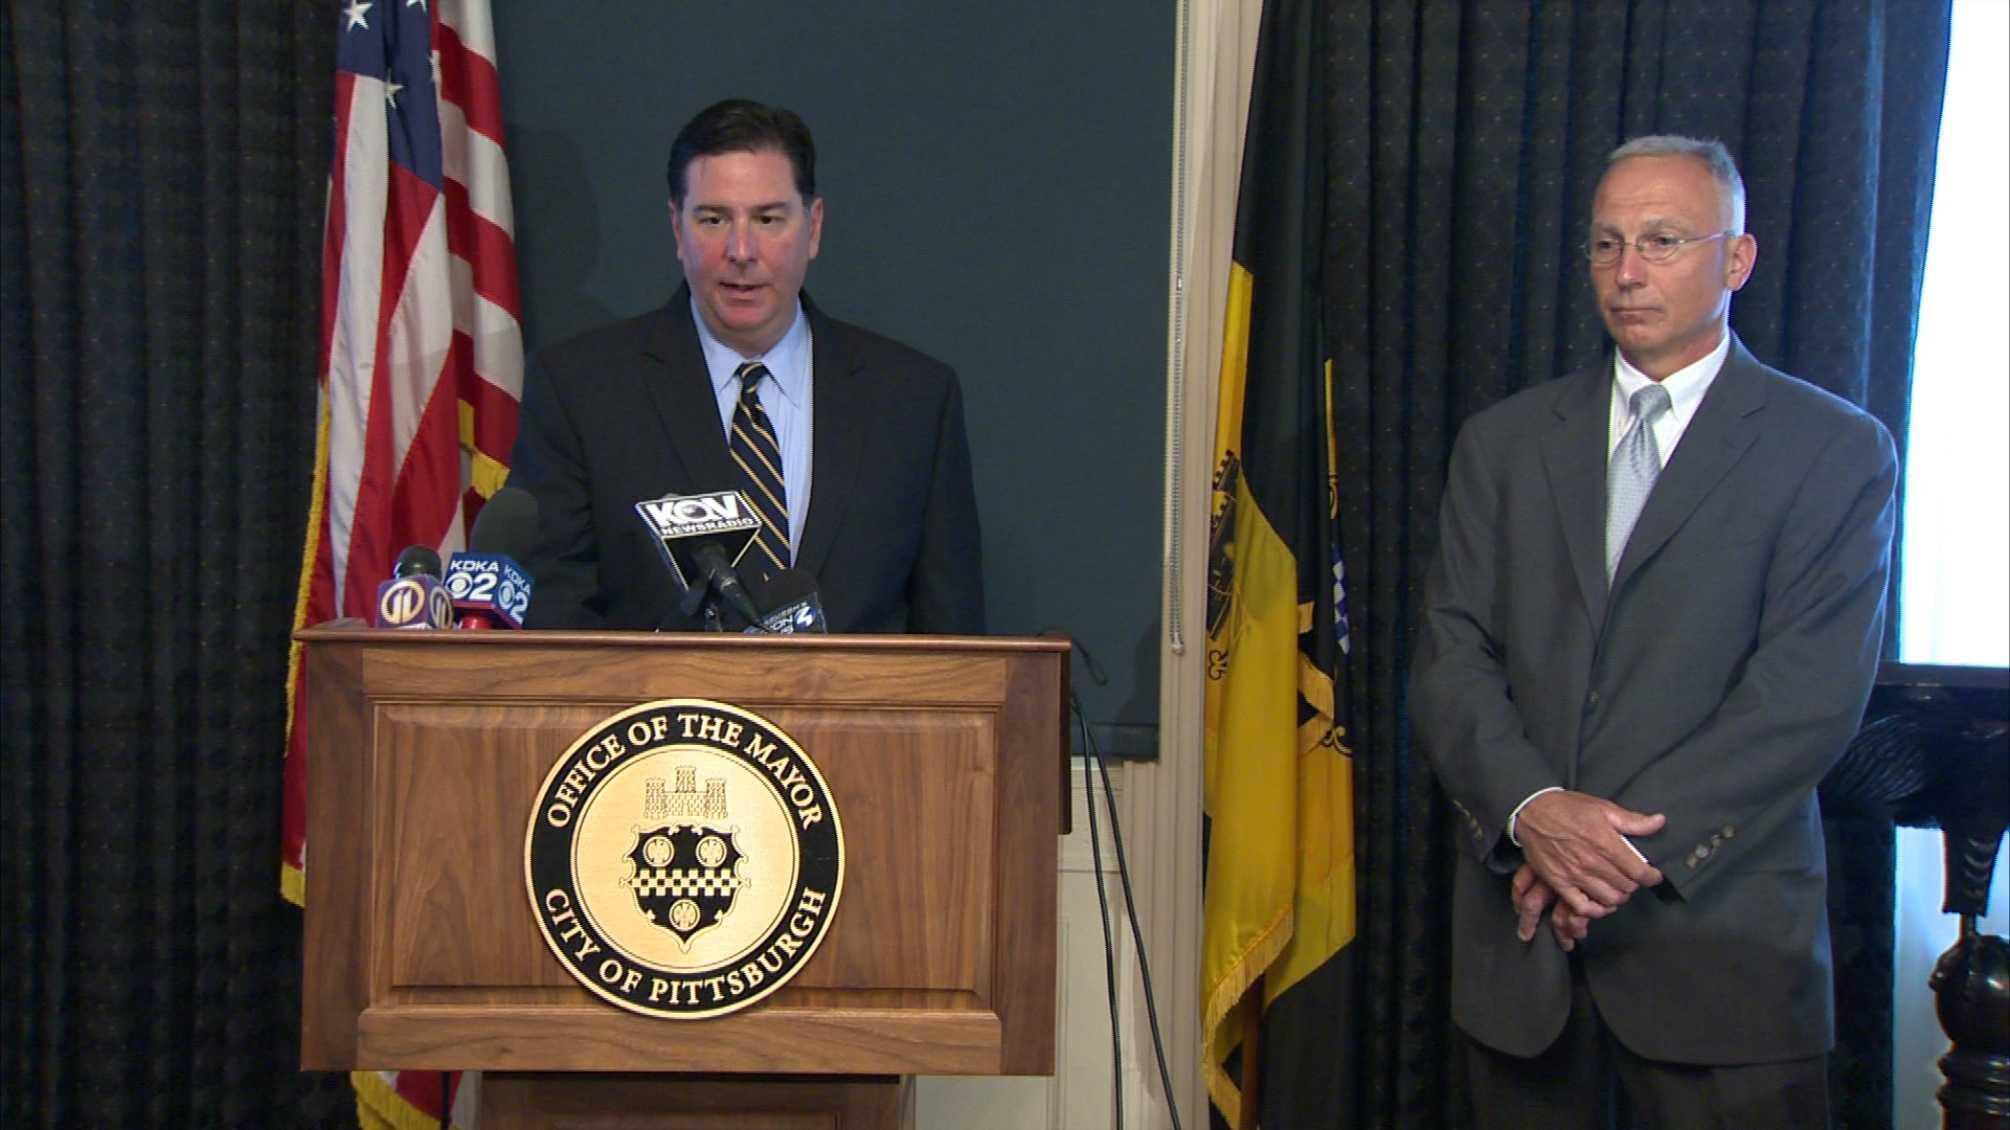 Mayor Bill Peduto and new Public Safety Director Stephen Bucar